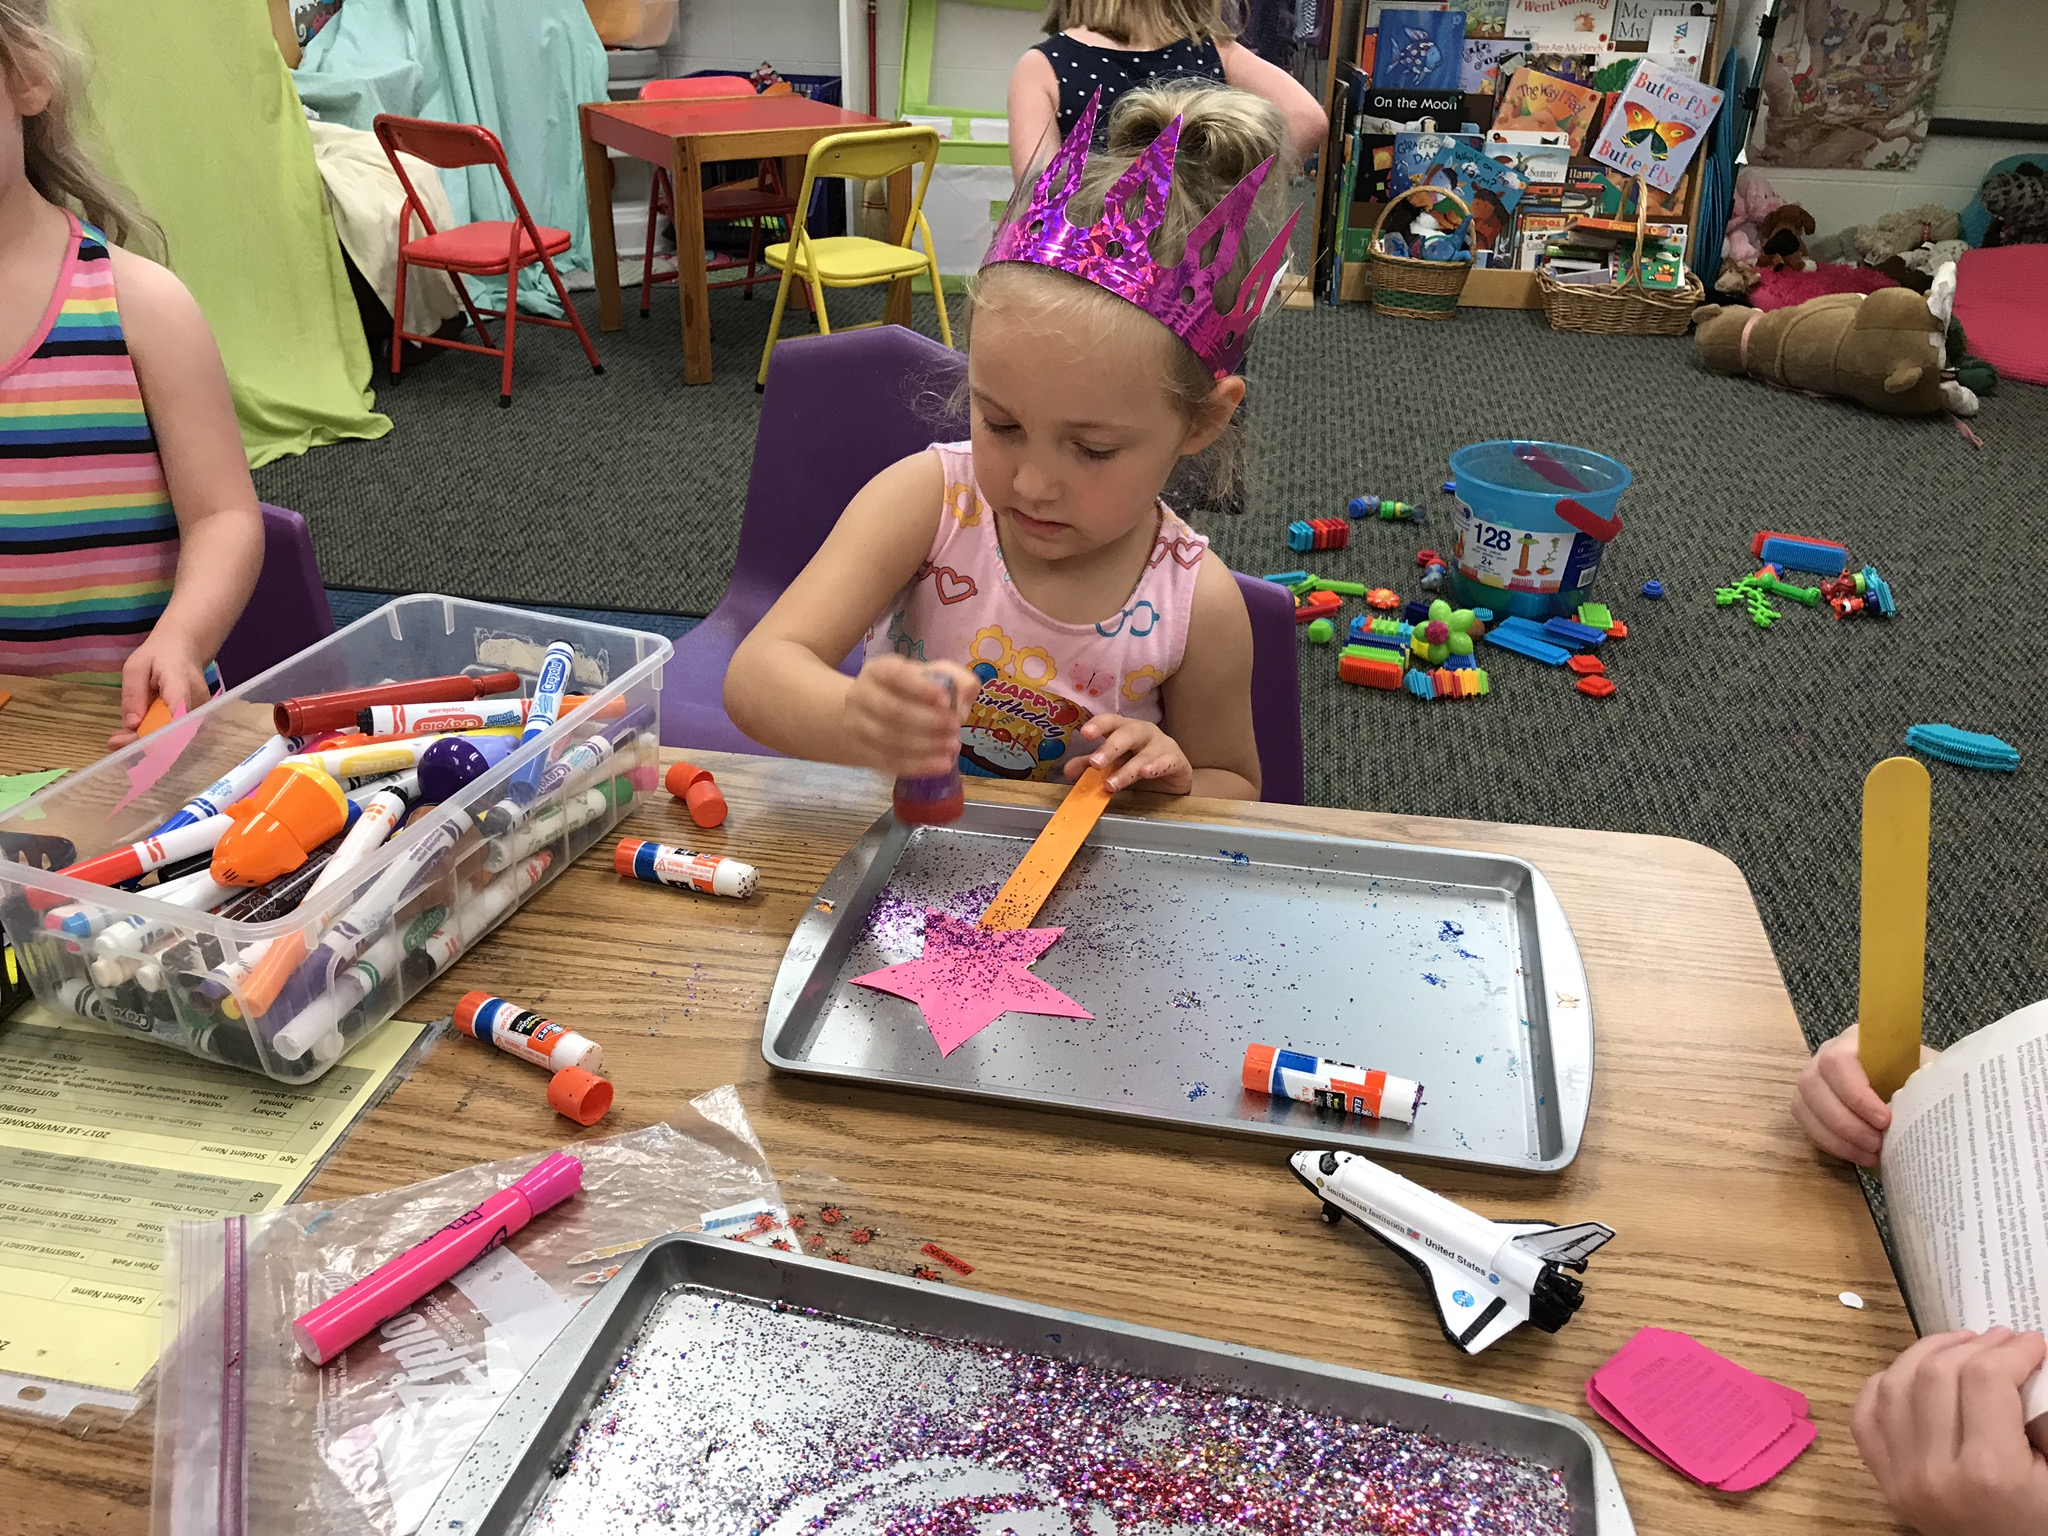 Spotlight Butterflies - Lets get messy! Art in all forms, paint, stickers, markers, dot-pens, glitter, glittler and more glitter... you name it and we will make art with it! The butterfly room is always a creative space for kids to explore their budding artistic side.